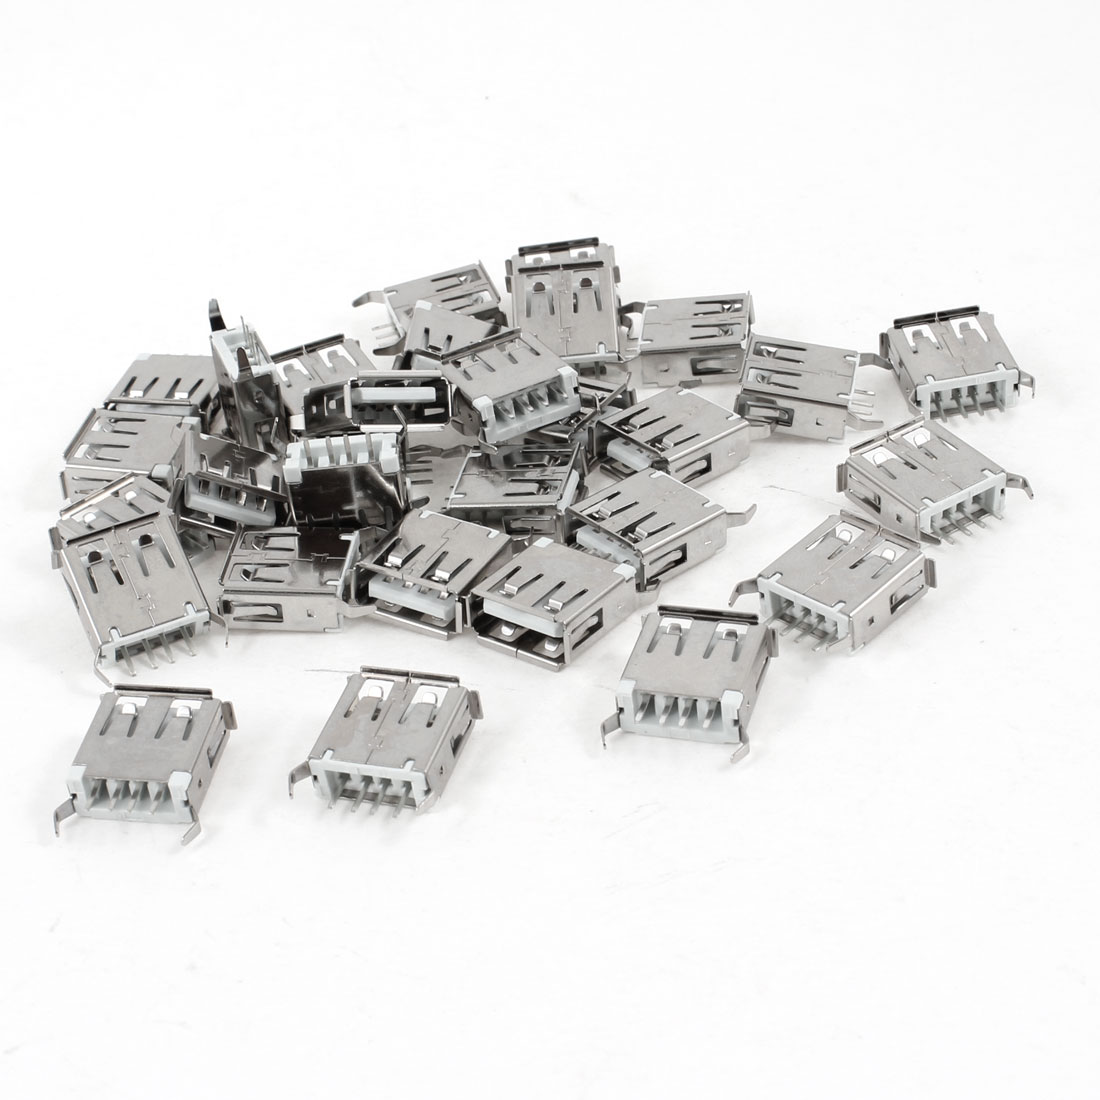 30 Pcs USB 2.0 Type A 180 Degree 4-Pin DIP Female Jack Connector